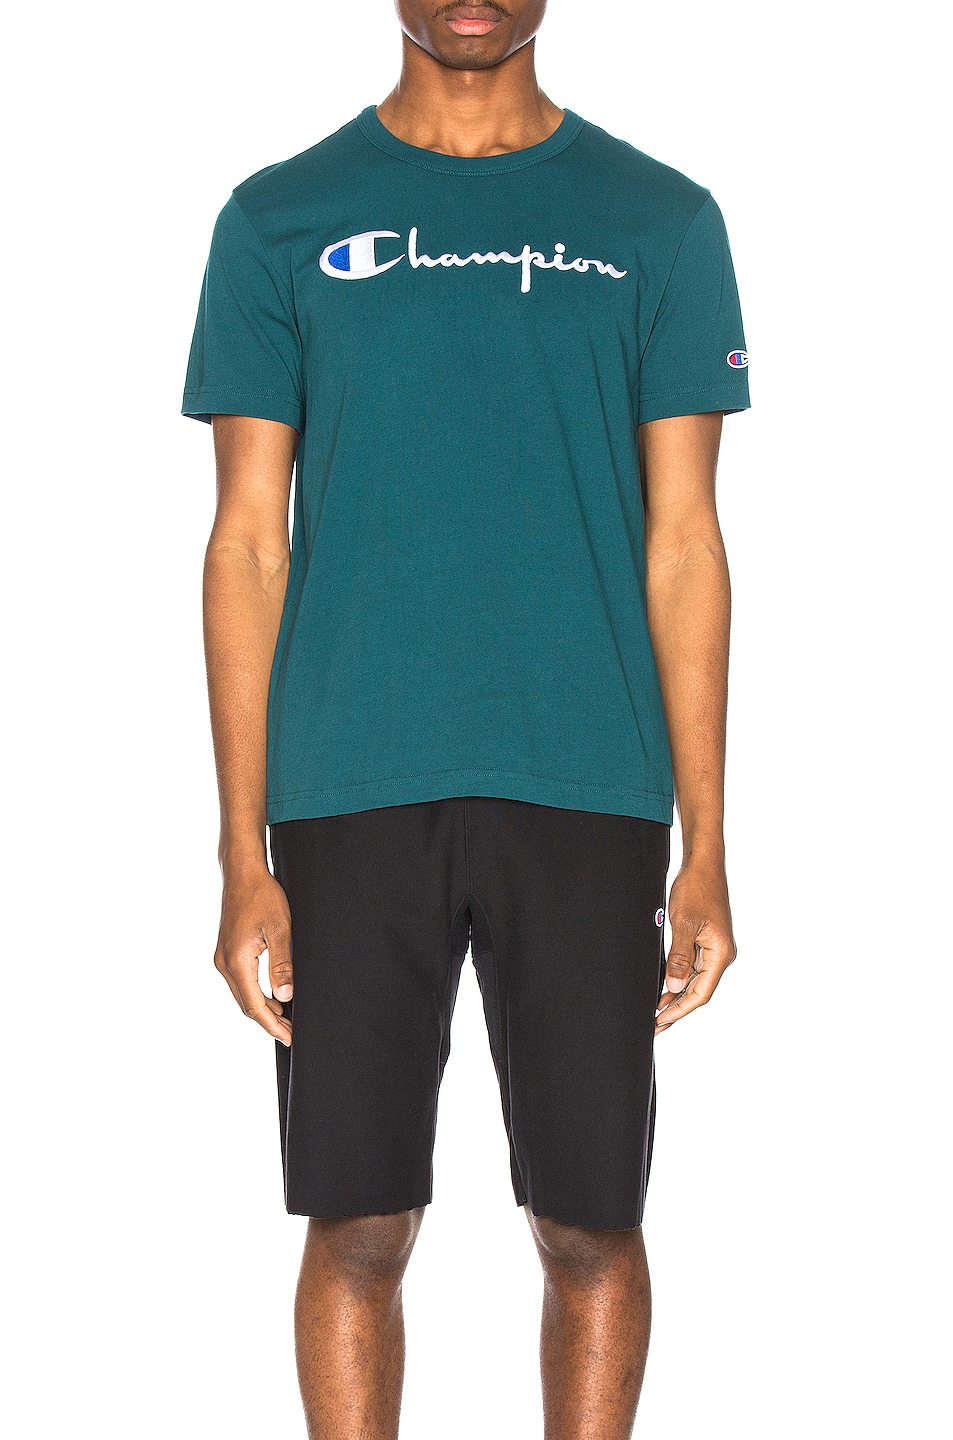 Image 1 of Champion Reverse Weave Big Script T-Shirt in Jeweled Jade